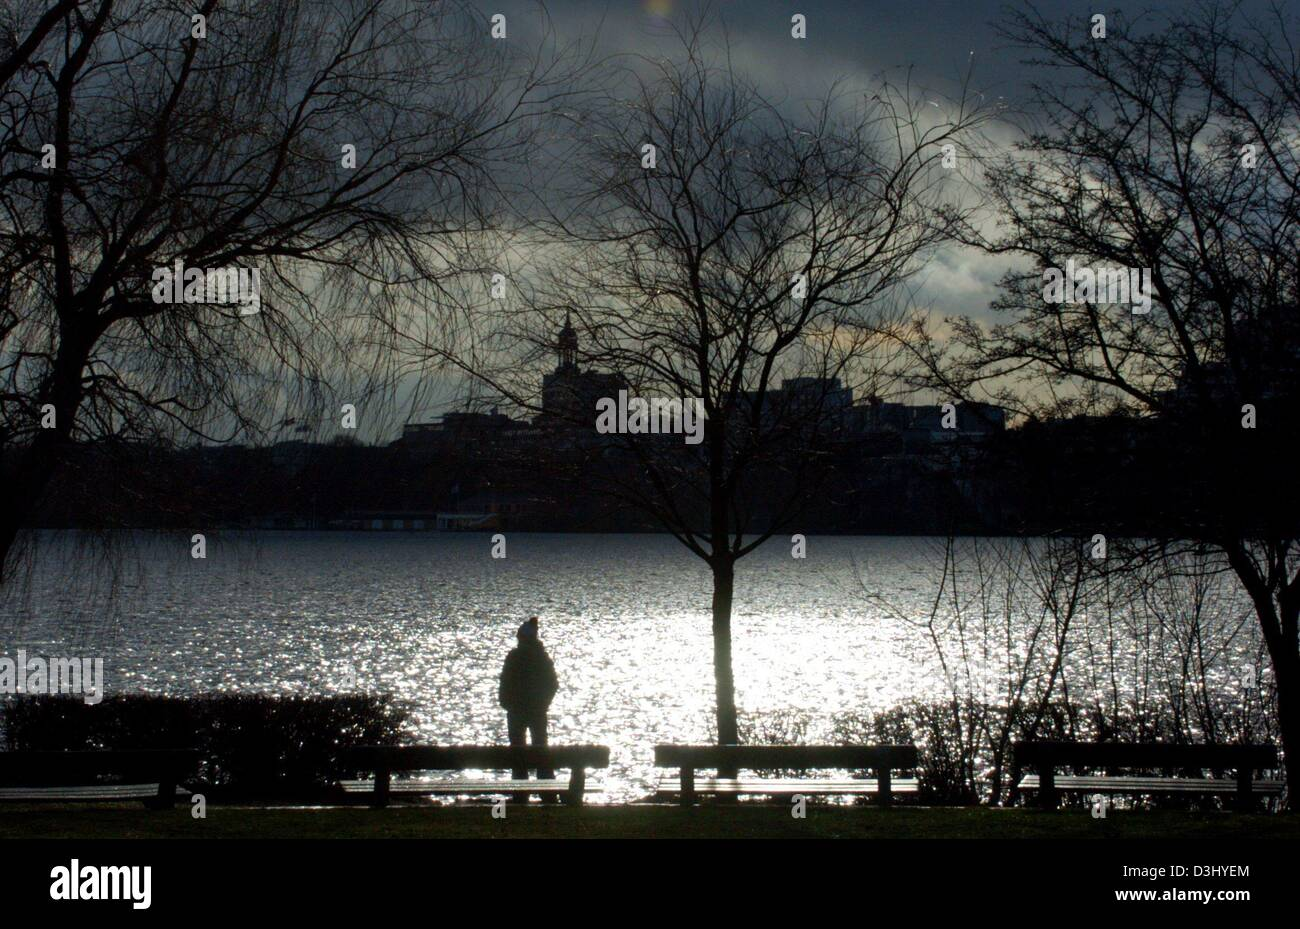 (dpa) - Dark clouds move slowly across the sky as a stroller stands at the bank of the sparkling river Alster looking - Stock Image